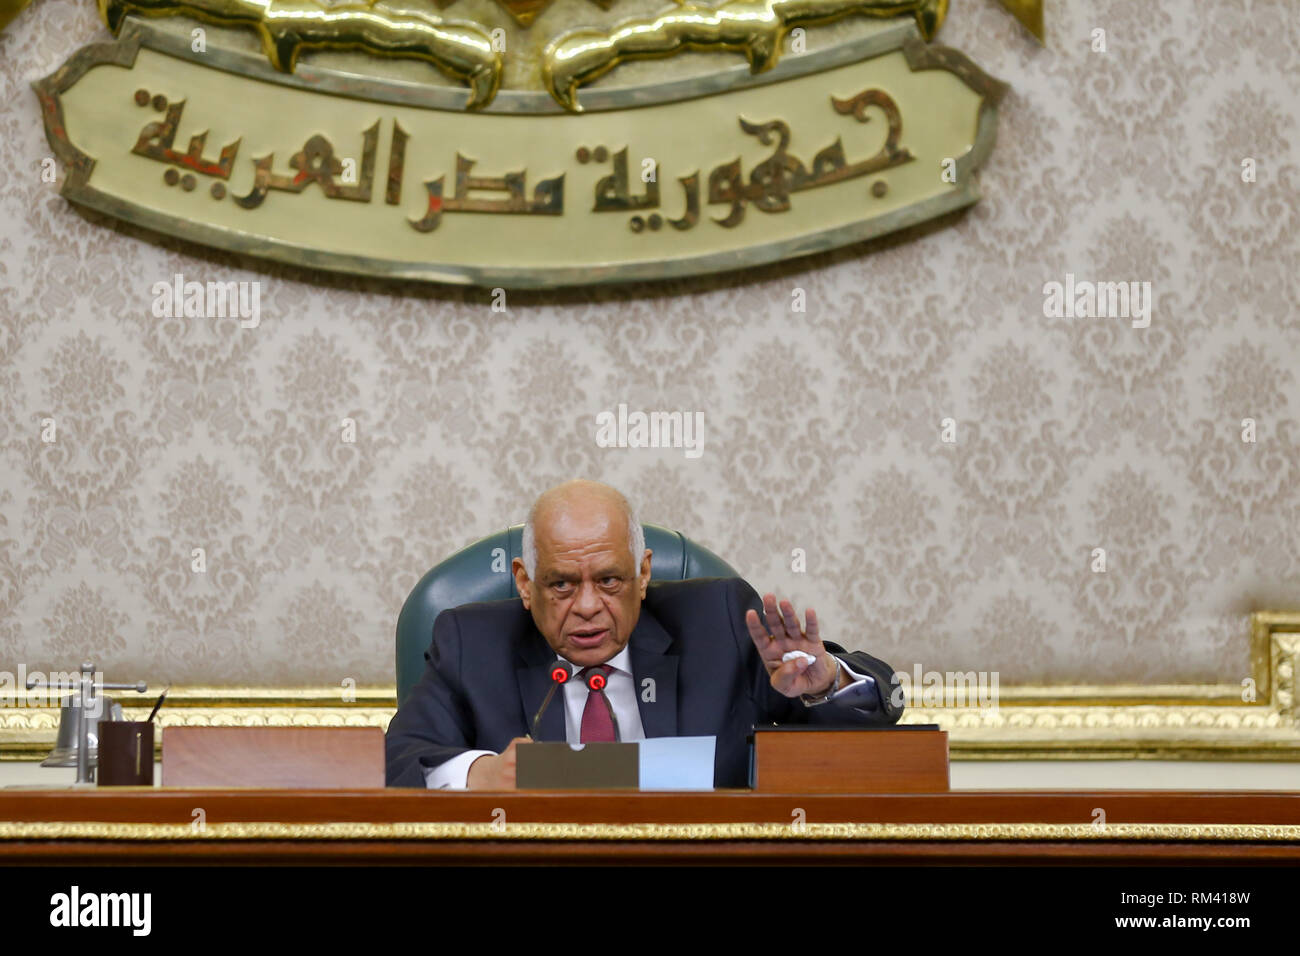 Cairo, Egypt. 13th Feb, 2019. Egypt's Parliament Speaker Ali Abdel Aal presides a plenary session to deliberate the proposed constitutional amendments that will increase the country's President term in office from four to six years. The Parliament members will vote later on the amendments before referring it to the Legislative and Constitutional Affairs Committee to be discussed in detail and to be finalized before being referred to the president to be put up for a public vote in a national referendum. Credit: Lobna Tarek/dpa/Alamy Live News - Stock Image